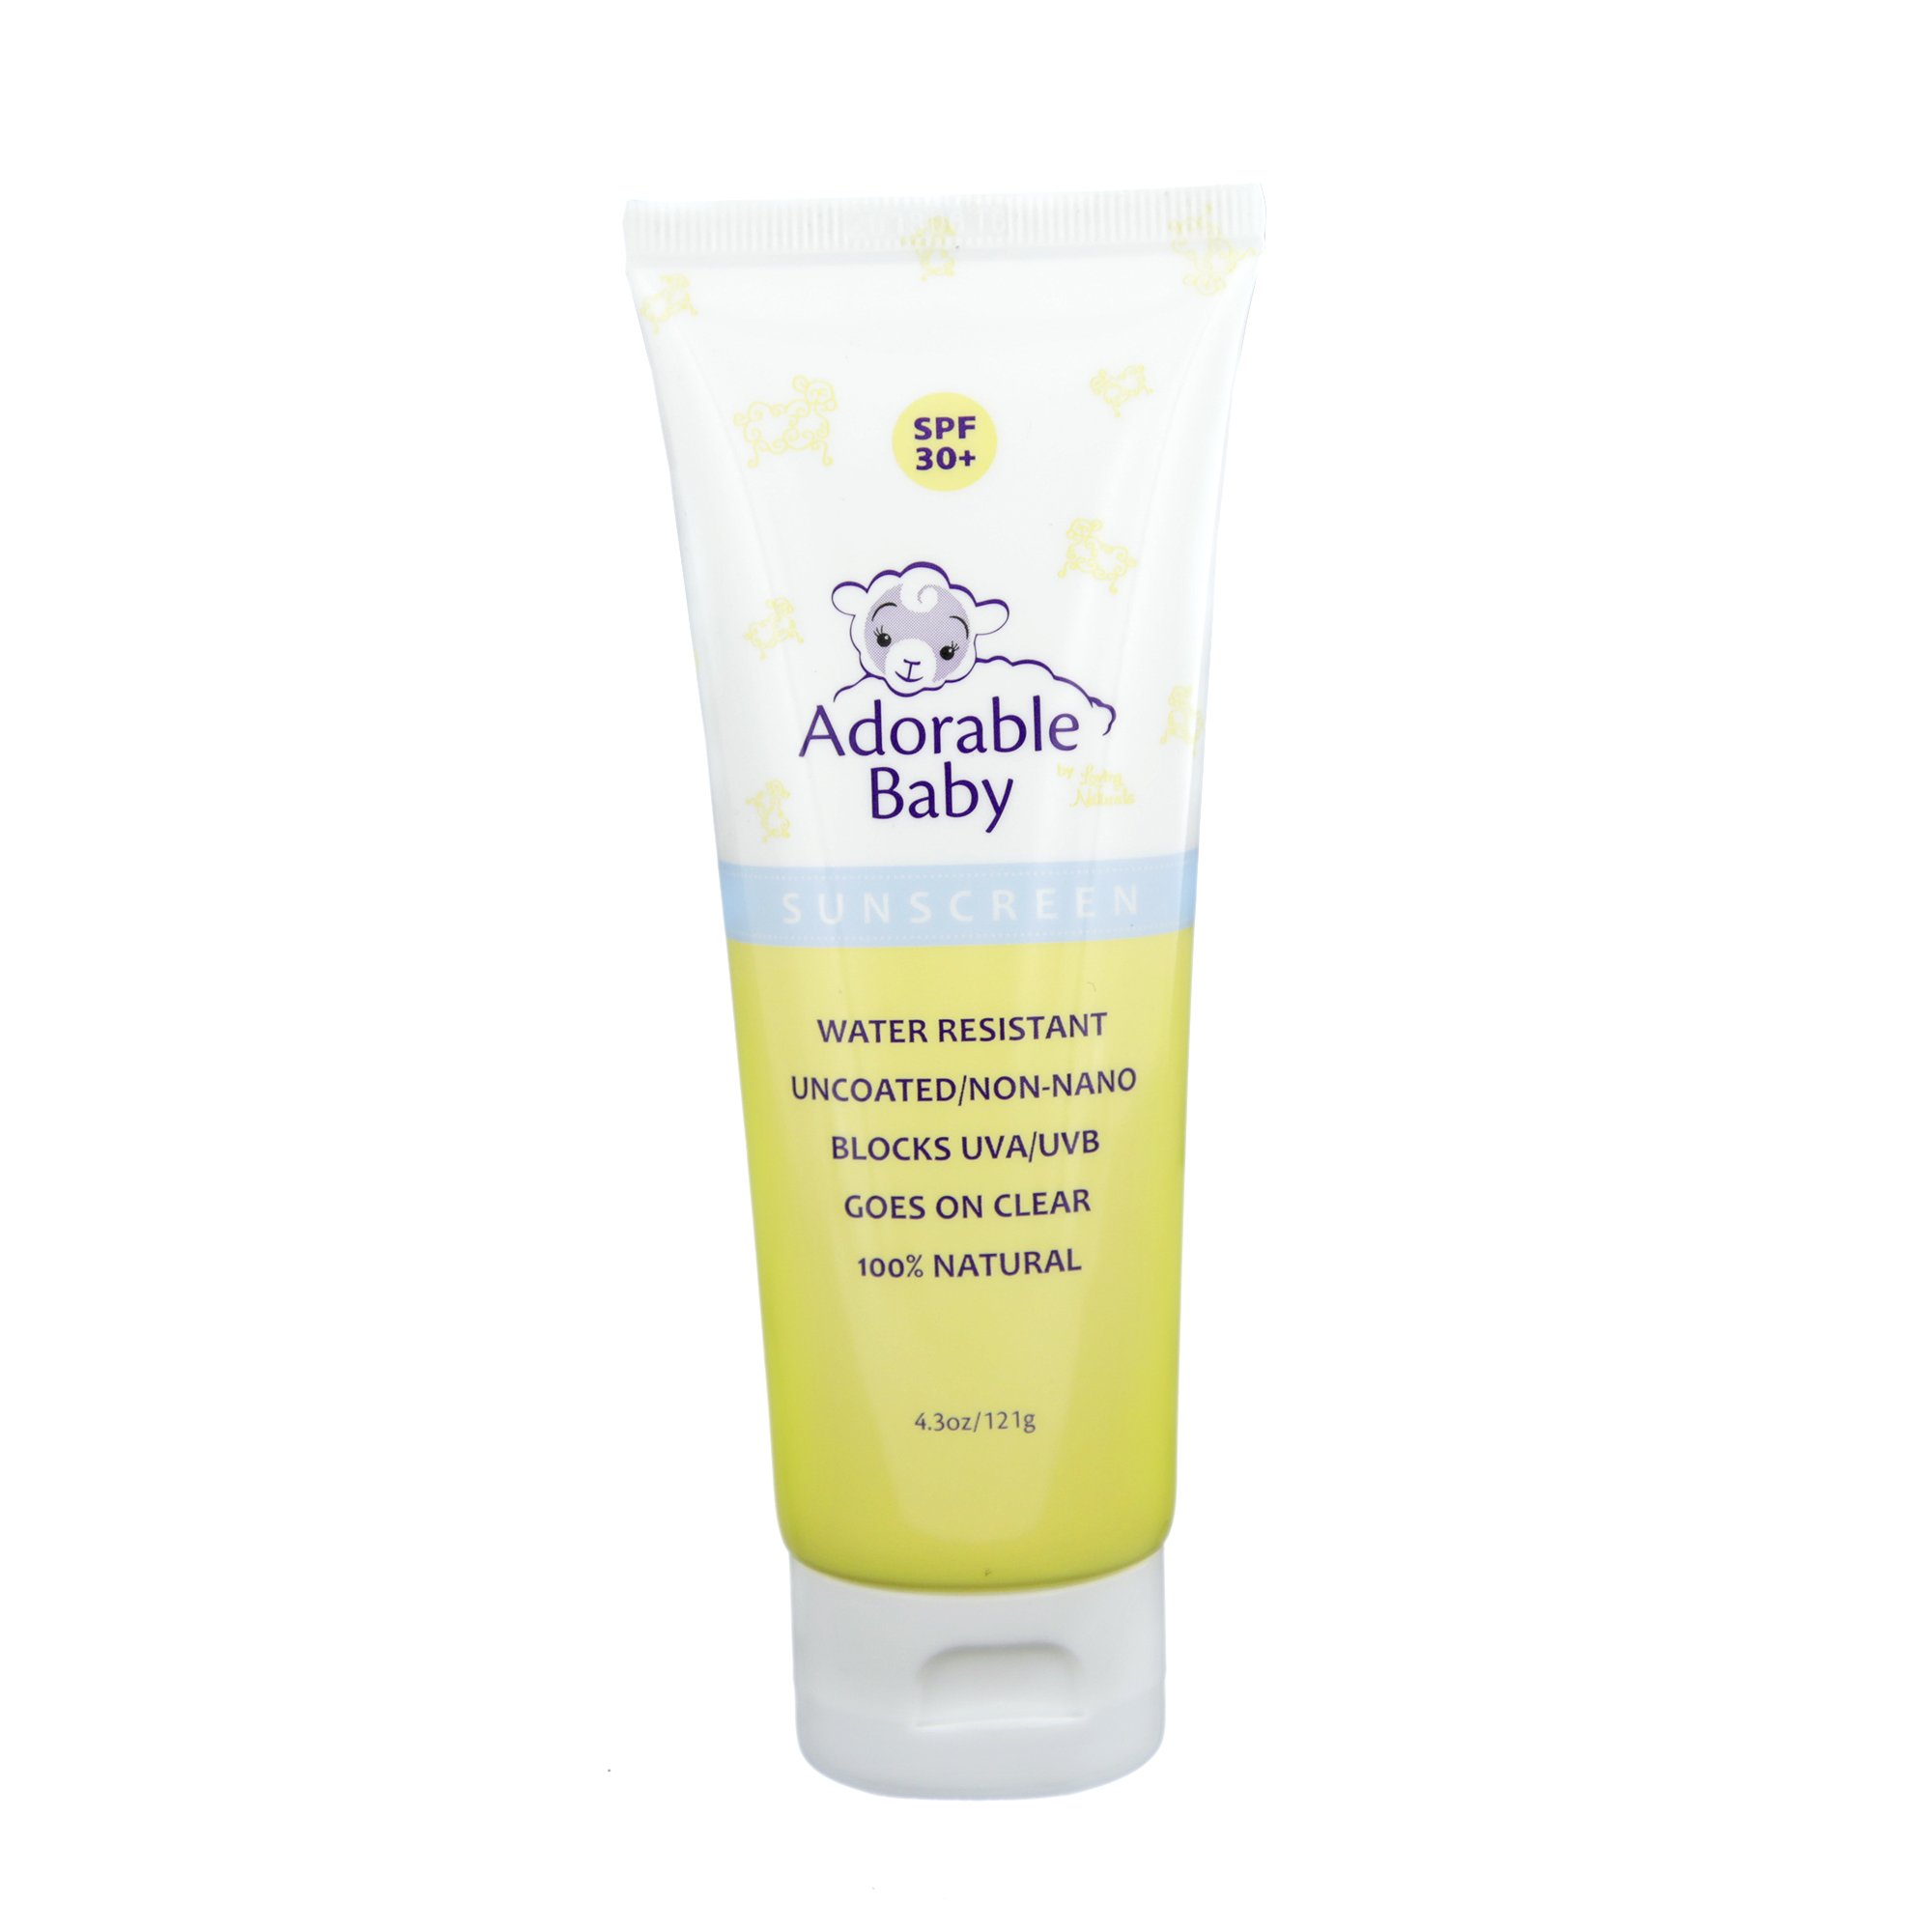 Adorable Baby All Natural Sunscreen SPF 30+ Non-Nano Zinc Oxide UVA/UVB 4.3oz By Loving Naturals